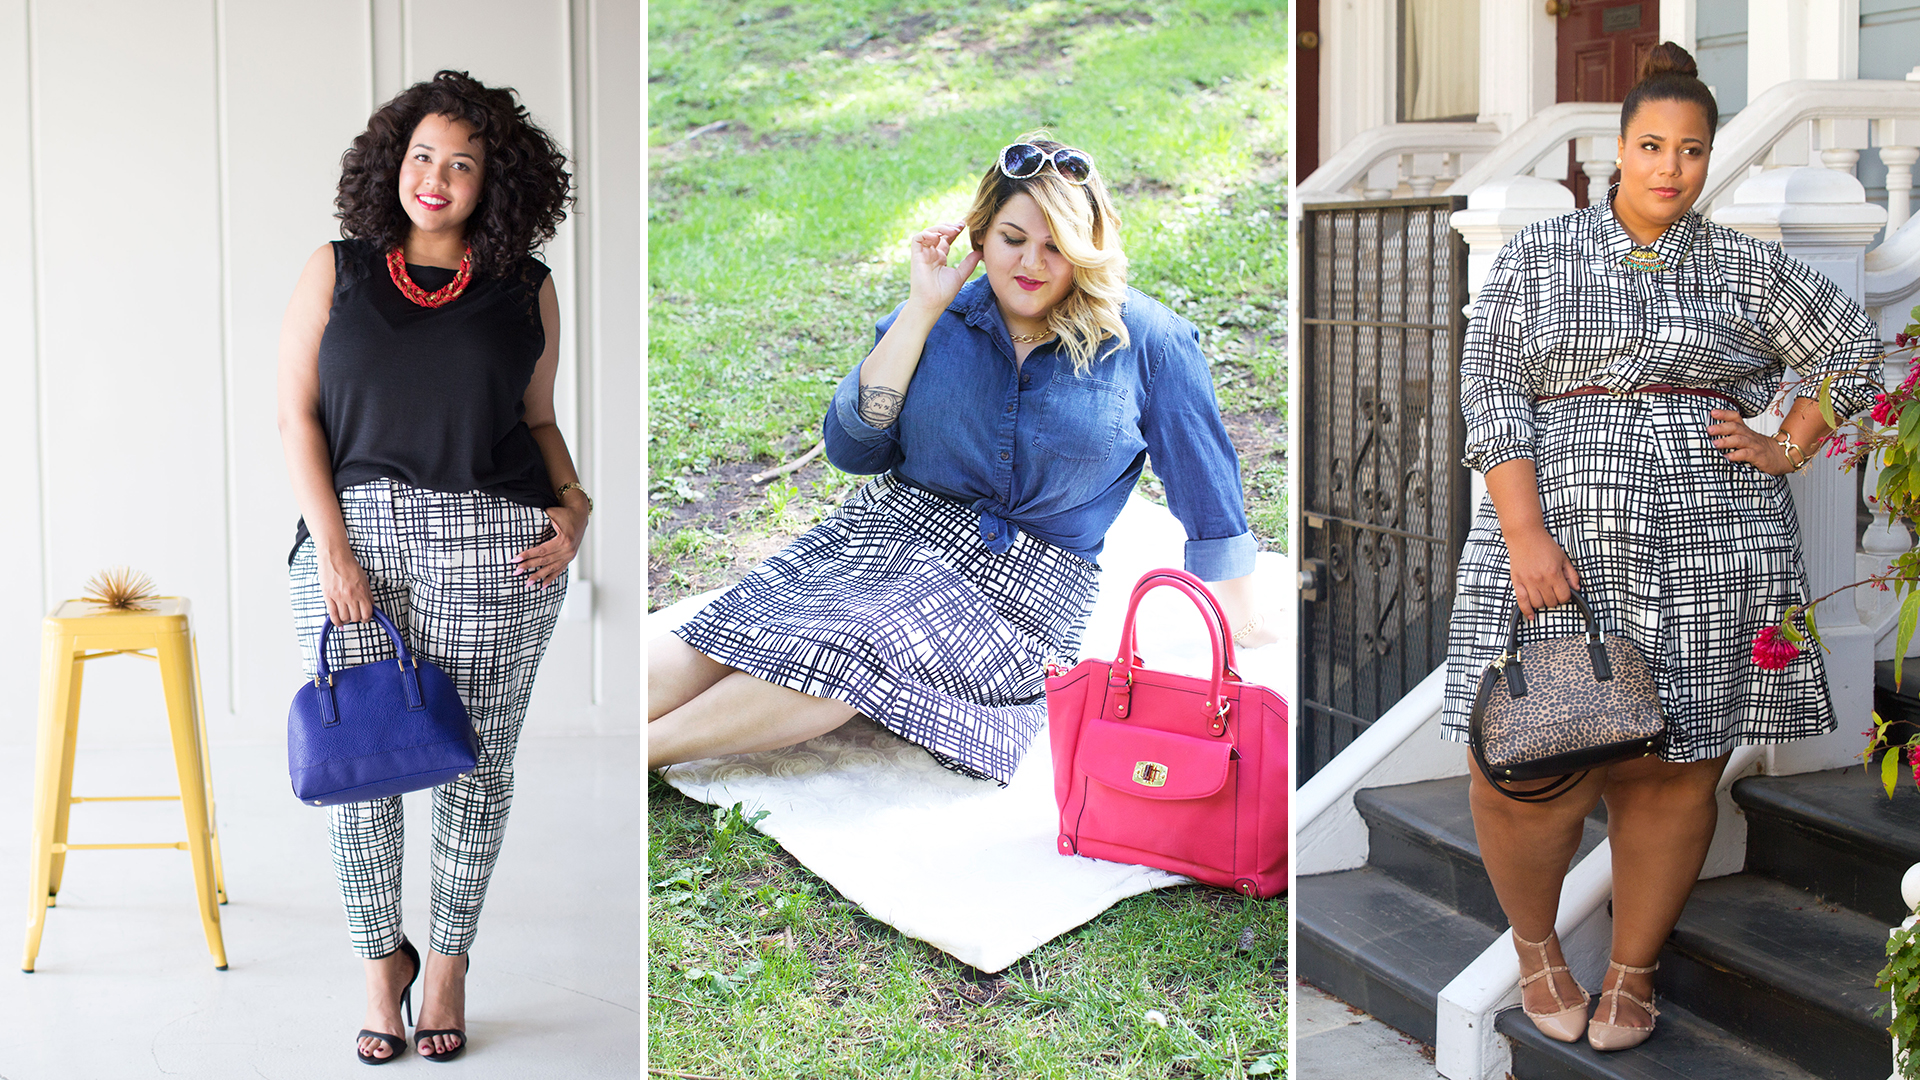 55f84533 Target unveils plus-size Ava & Viv collection for fall